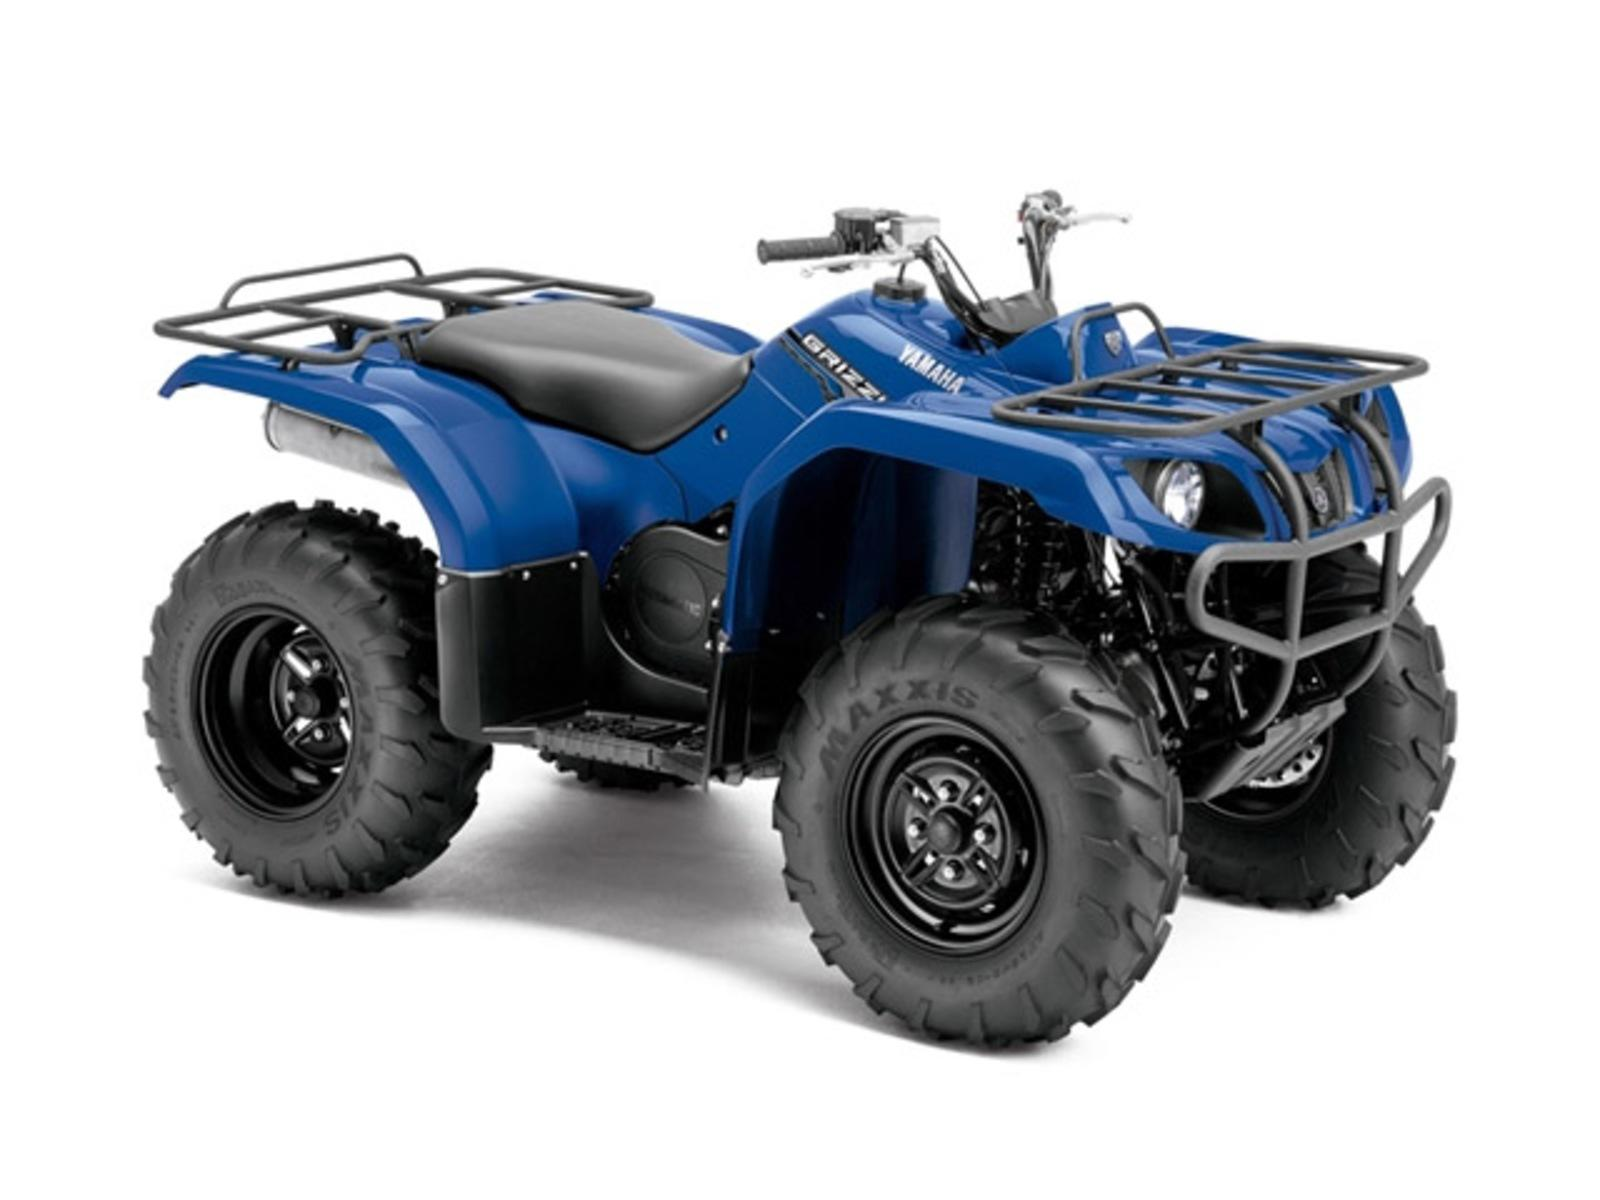 2014 yamaha grizzly 350 review top speed. Black Bedroom Furniture Sets. Home Design Ideas